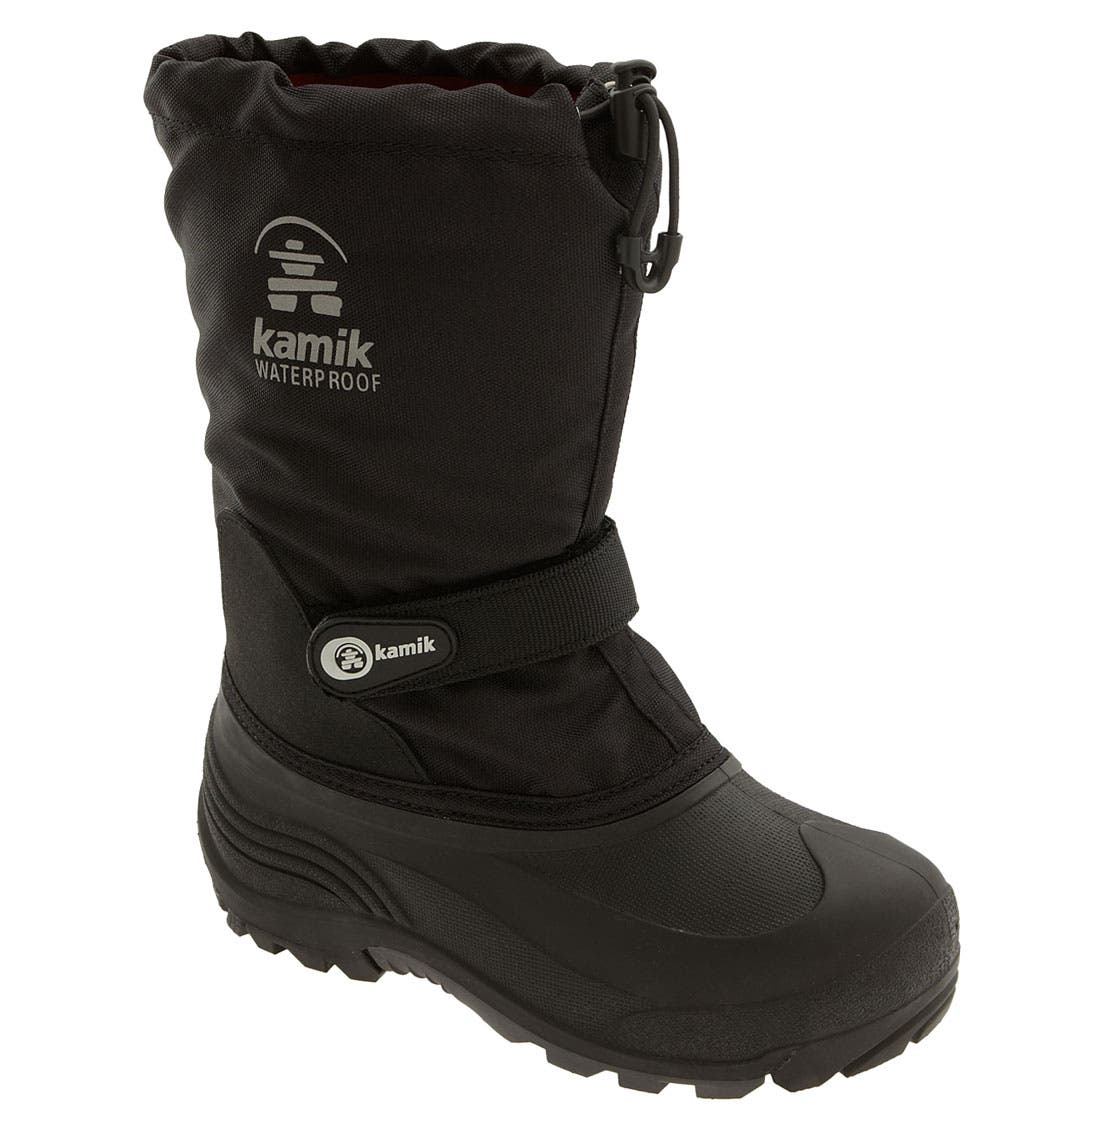 Alternate Image 1 Selected - Kamik 'Waterbug' Boot (Toddler, Little Kid & Big Kid)